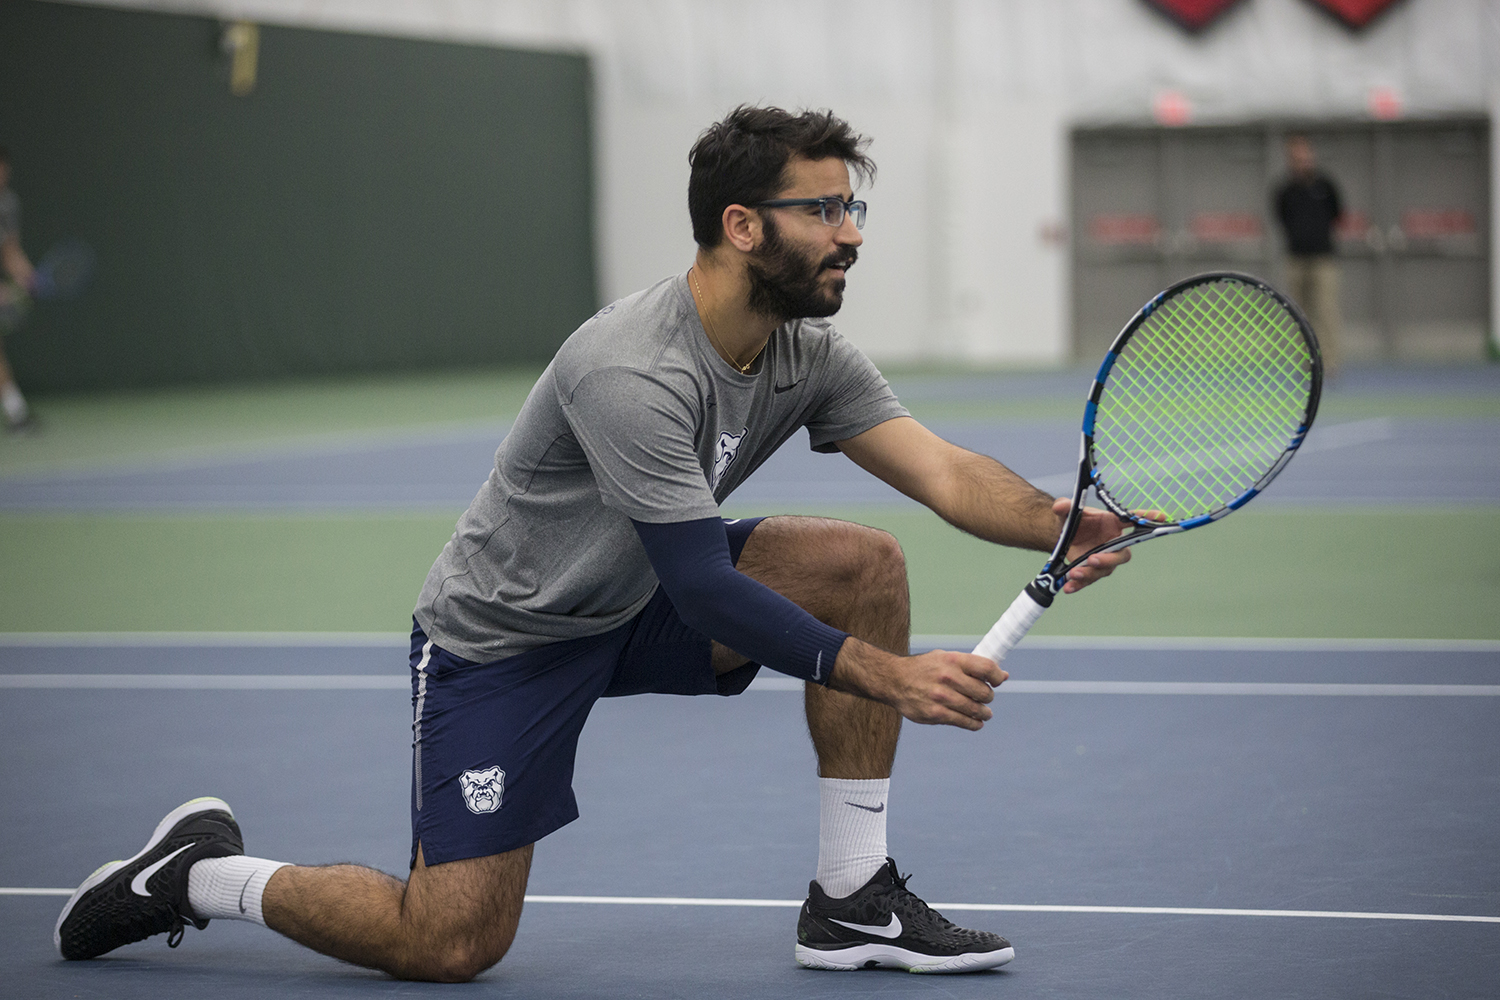 Butler%27s+Aviv+Ben+Shabat+kneels+out+of+the+way+of+his+teammate%27s+serve+at+a+tennis+match+between+East+Tennessee+State+and+Butler.+The+Buccaneers+won+the+match+7-0.